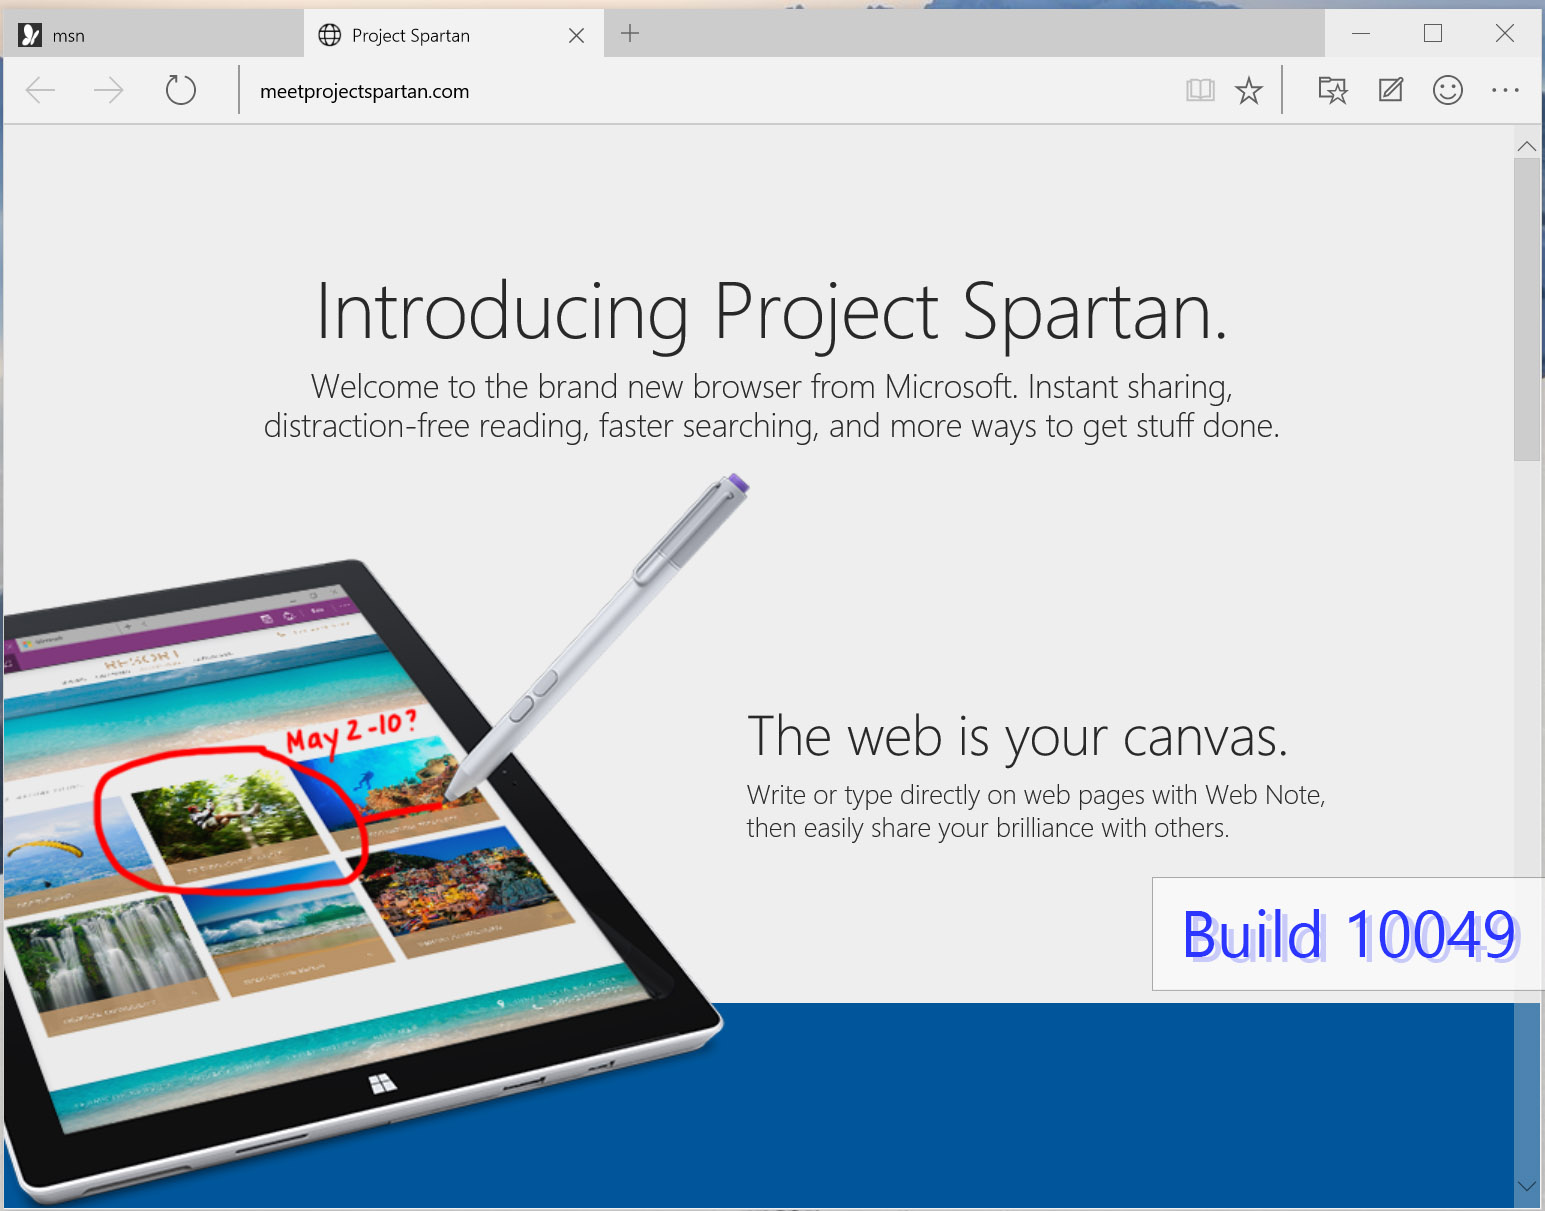 Windows_10_Build_10049_Project_Spartan_Landing_Page_Wide